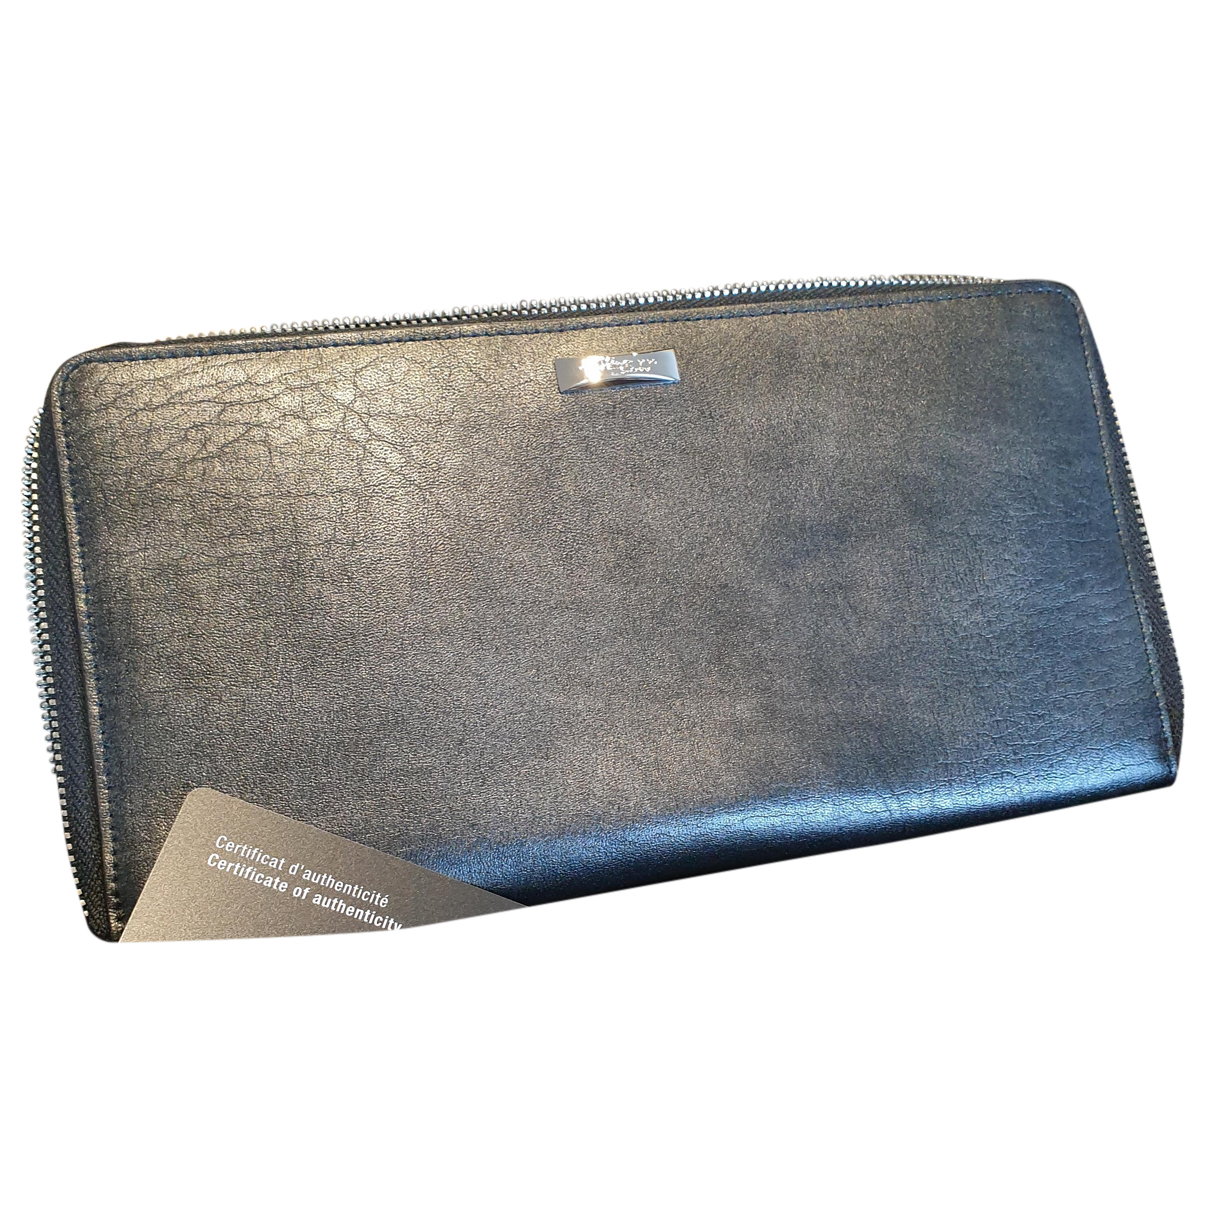 S.t. Dupont N Grey Leather Small bag, wallet & cases for Men N